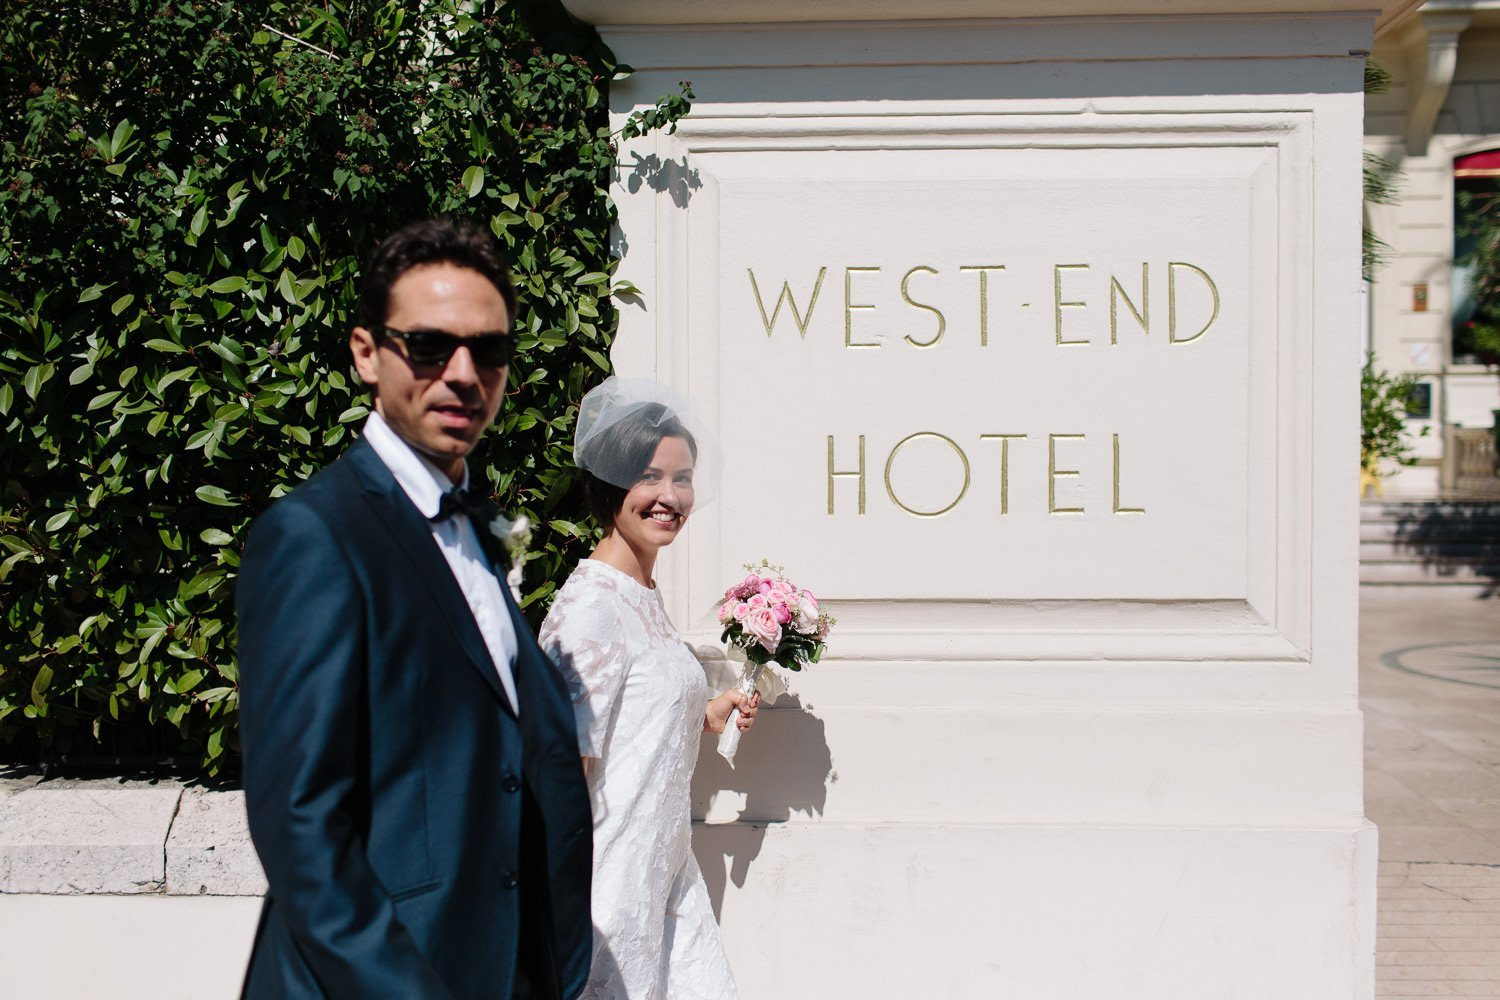 Hotel West End Nice Wedding